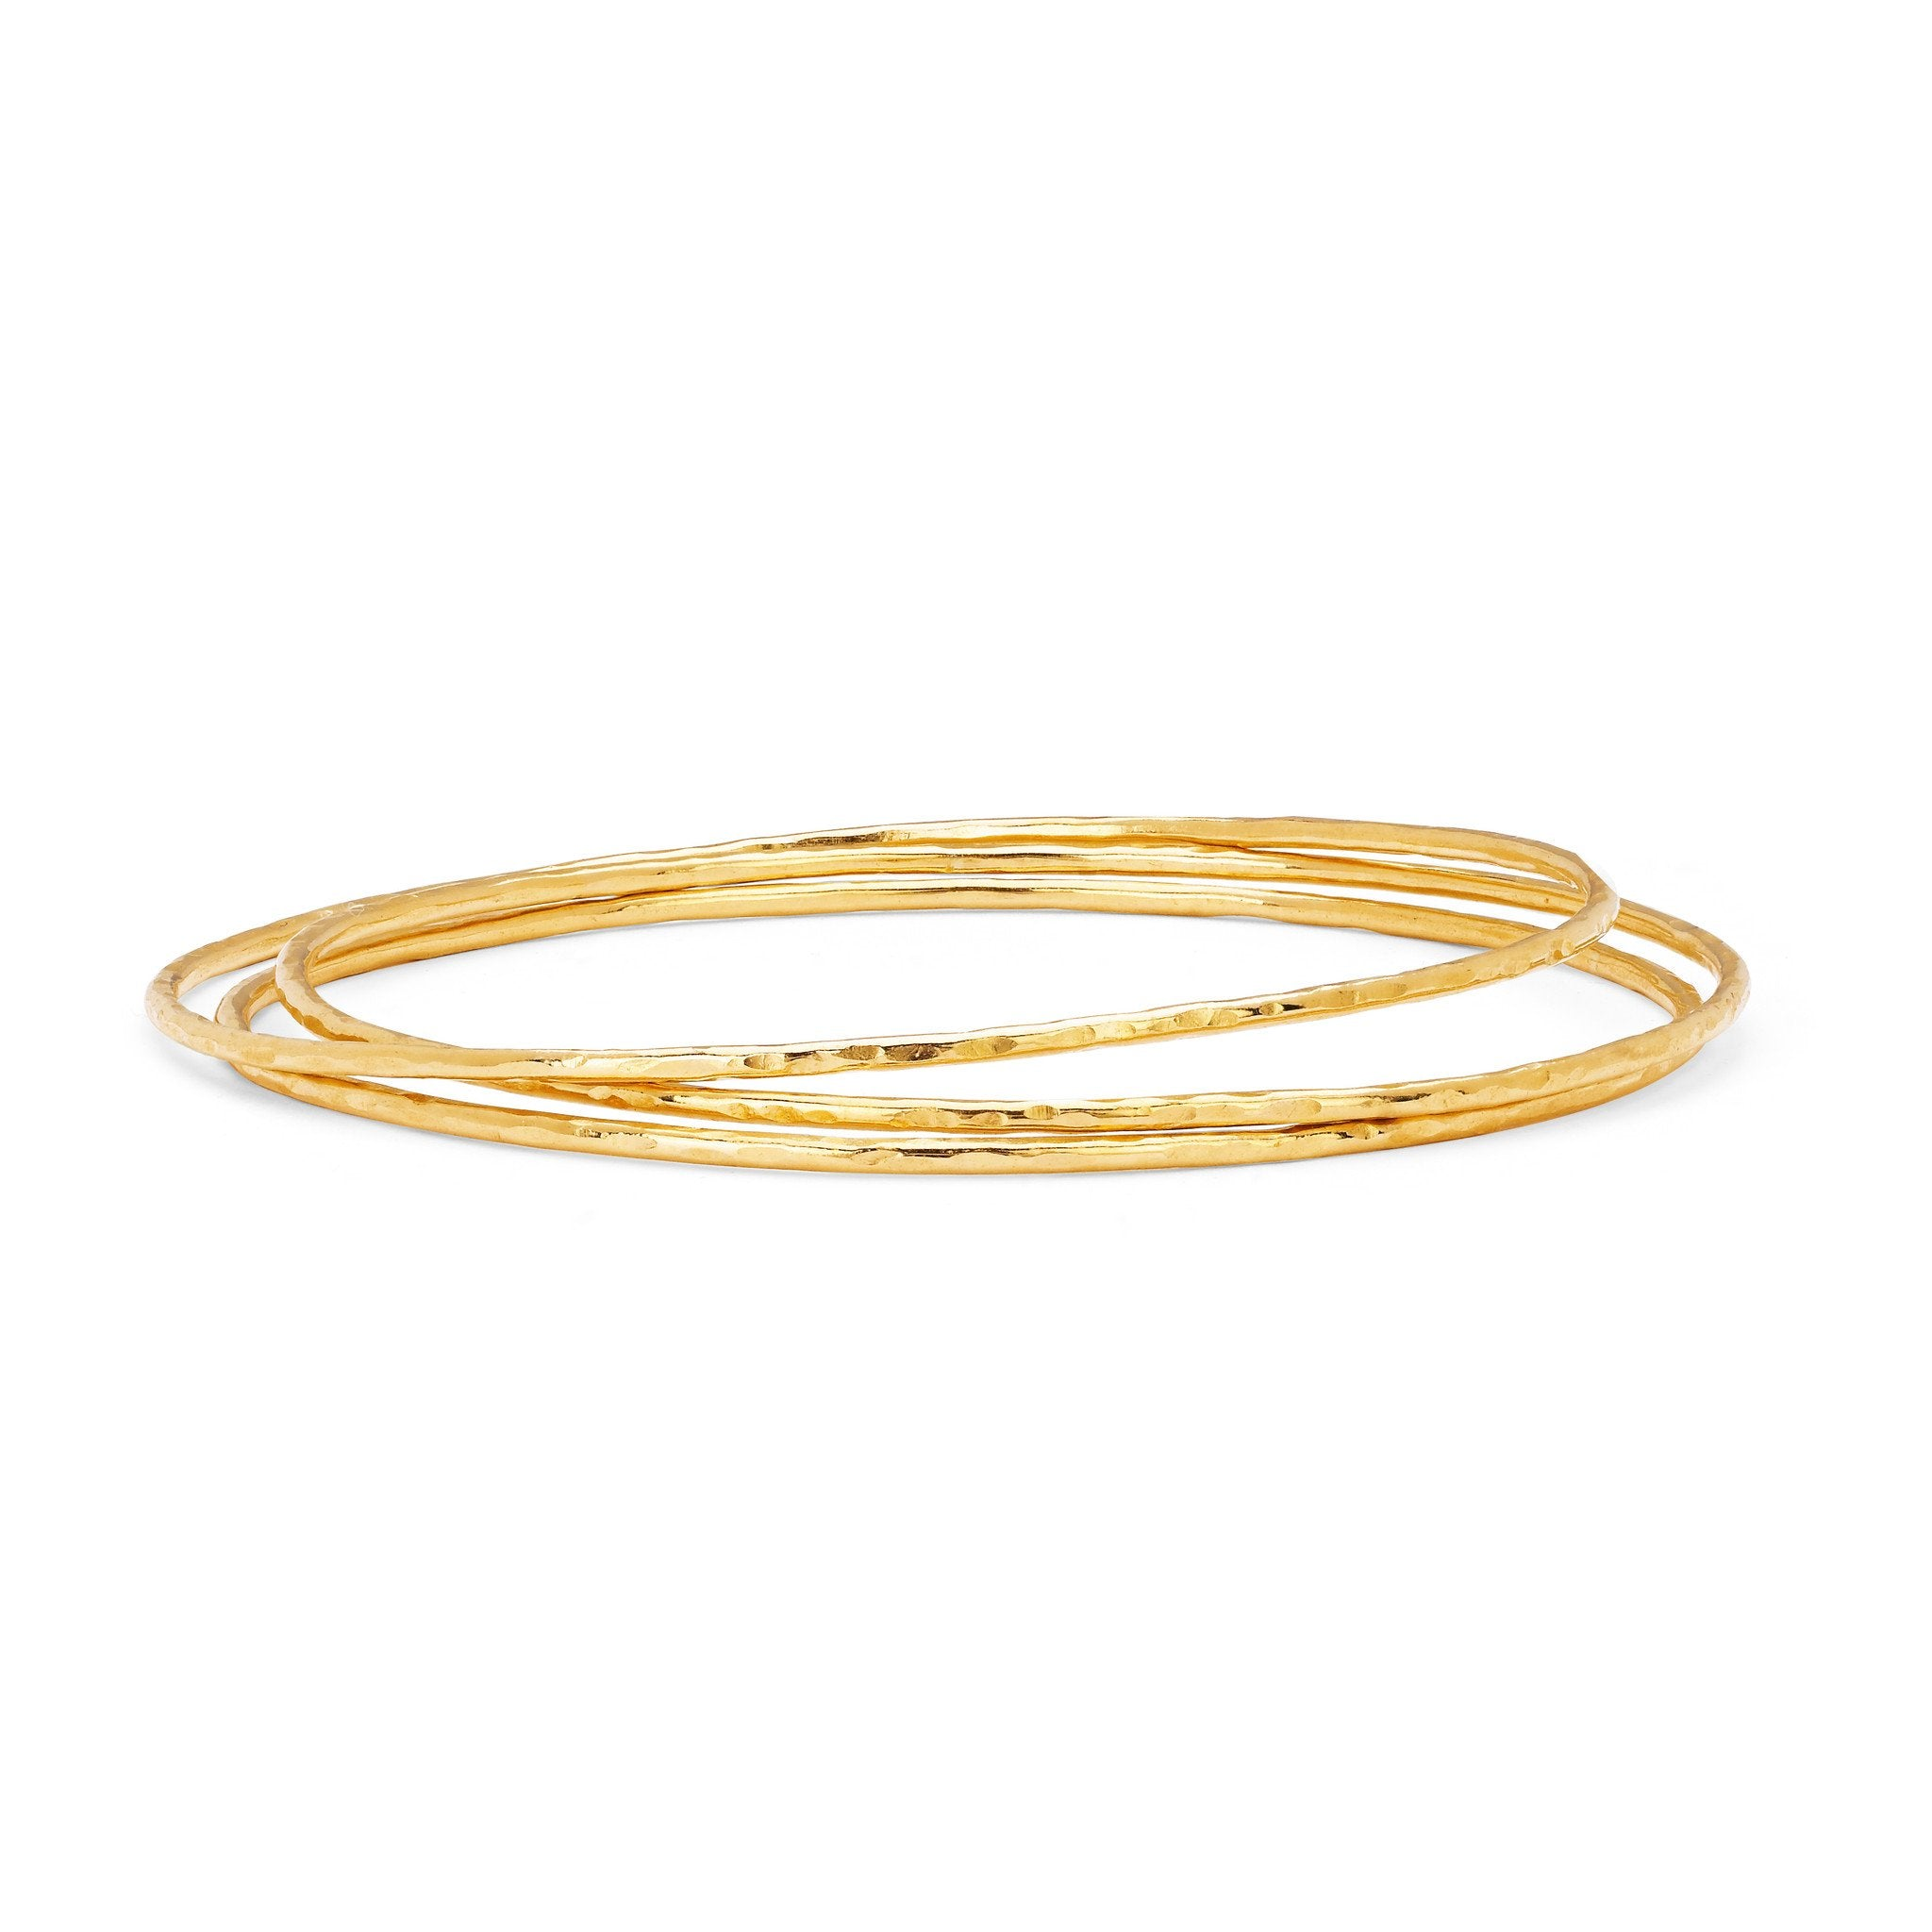 popular should bangle on put in a bracelet gold bangles which an yellow hdhuzlq occasions individual